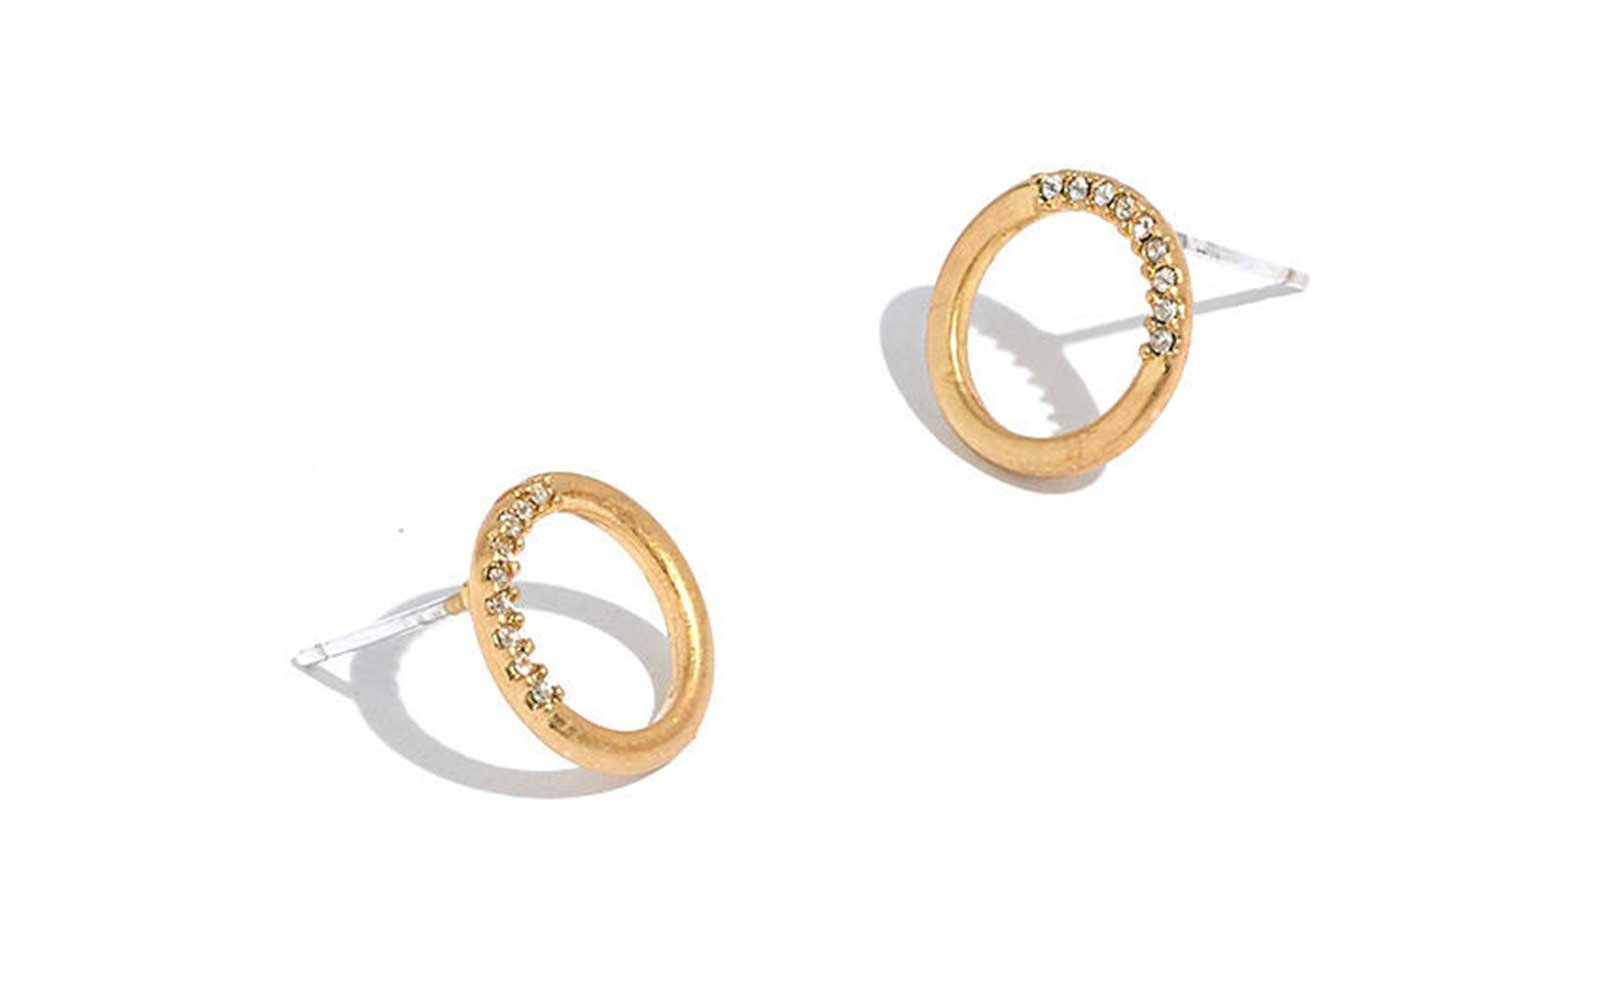 Madewell Circle Stud Earrings